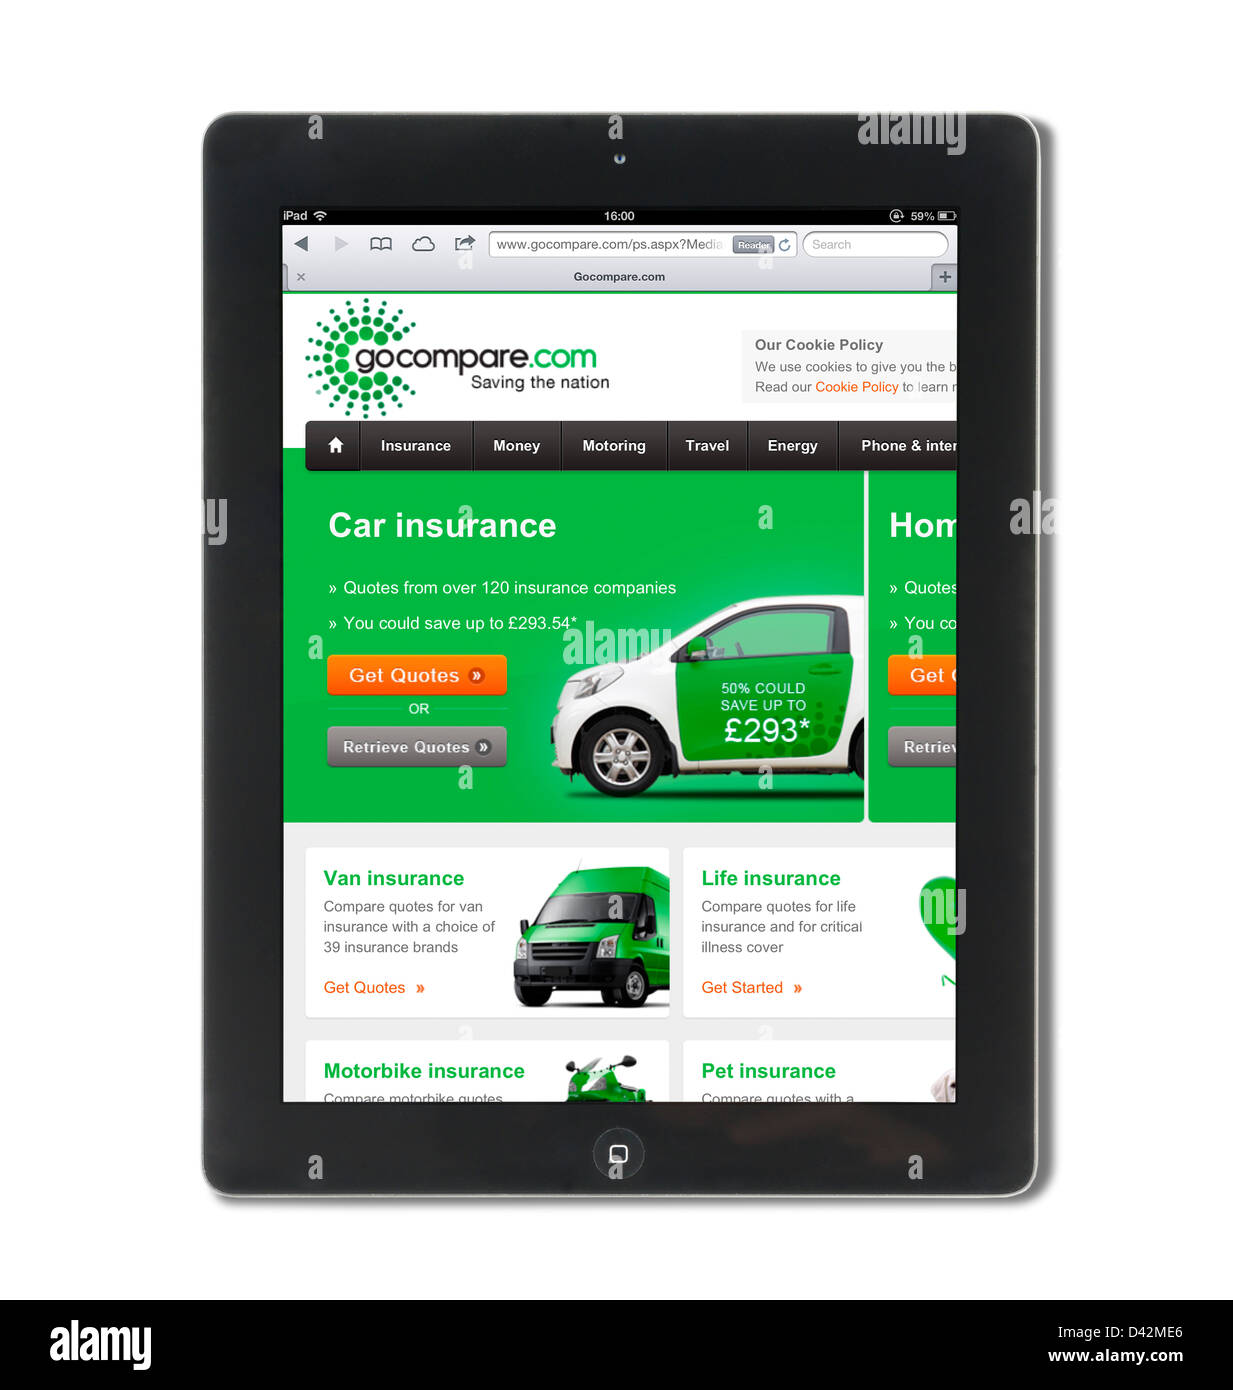 The insurance comparison website gocompare.com.com viewed on an iPad 4, UK - Stock Image